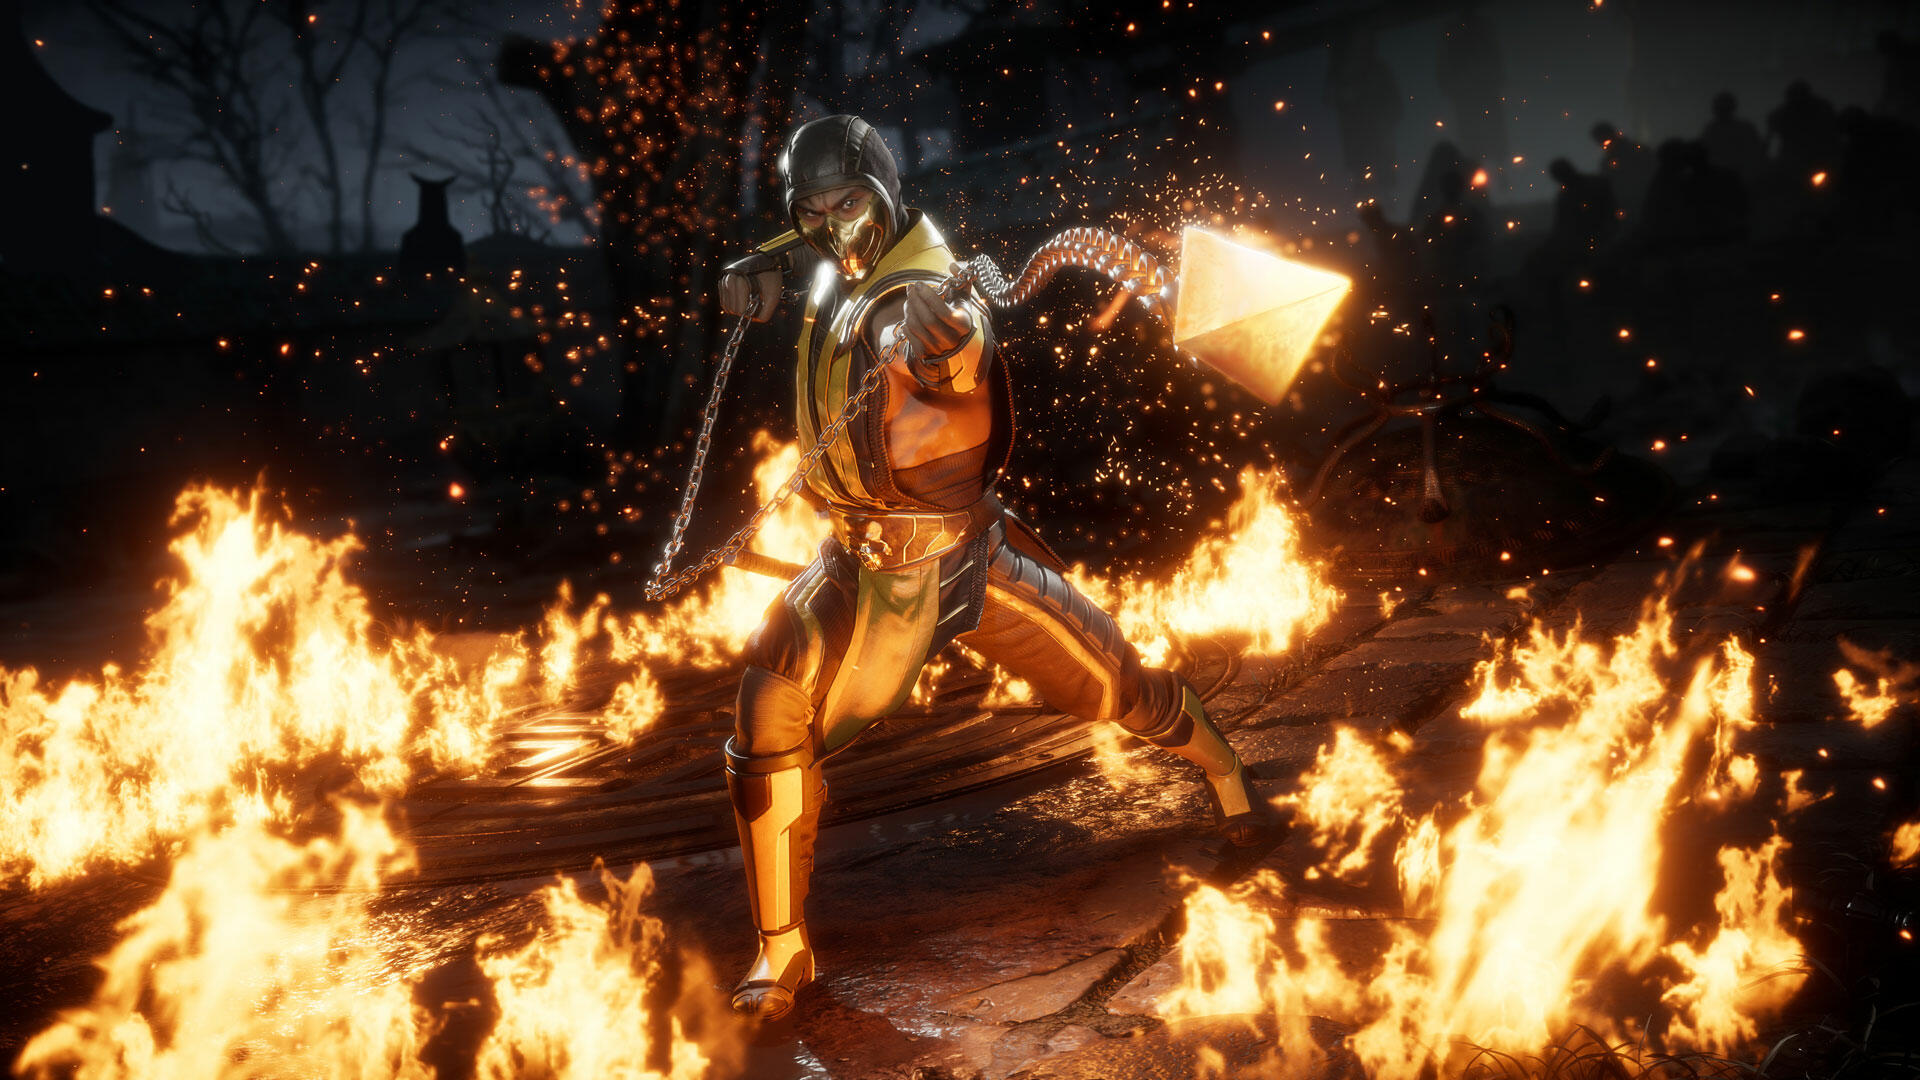 Not a Fatality: Mortal Kombat 11 Runs Shockingly Well on